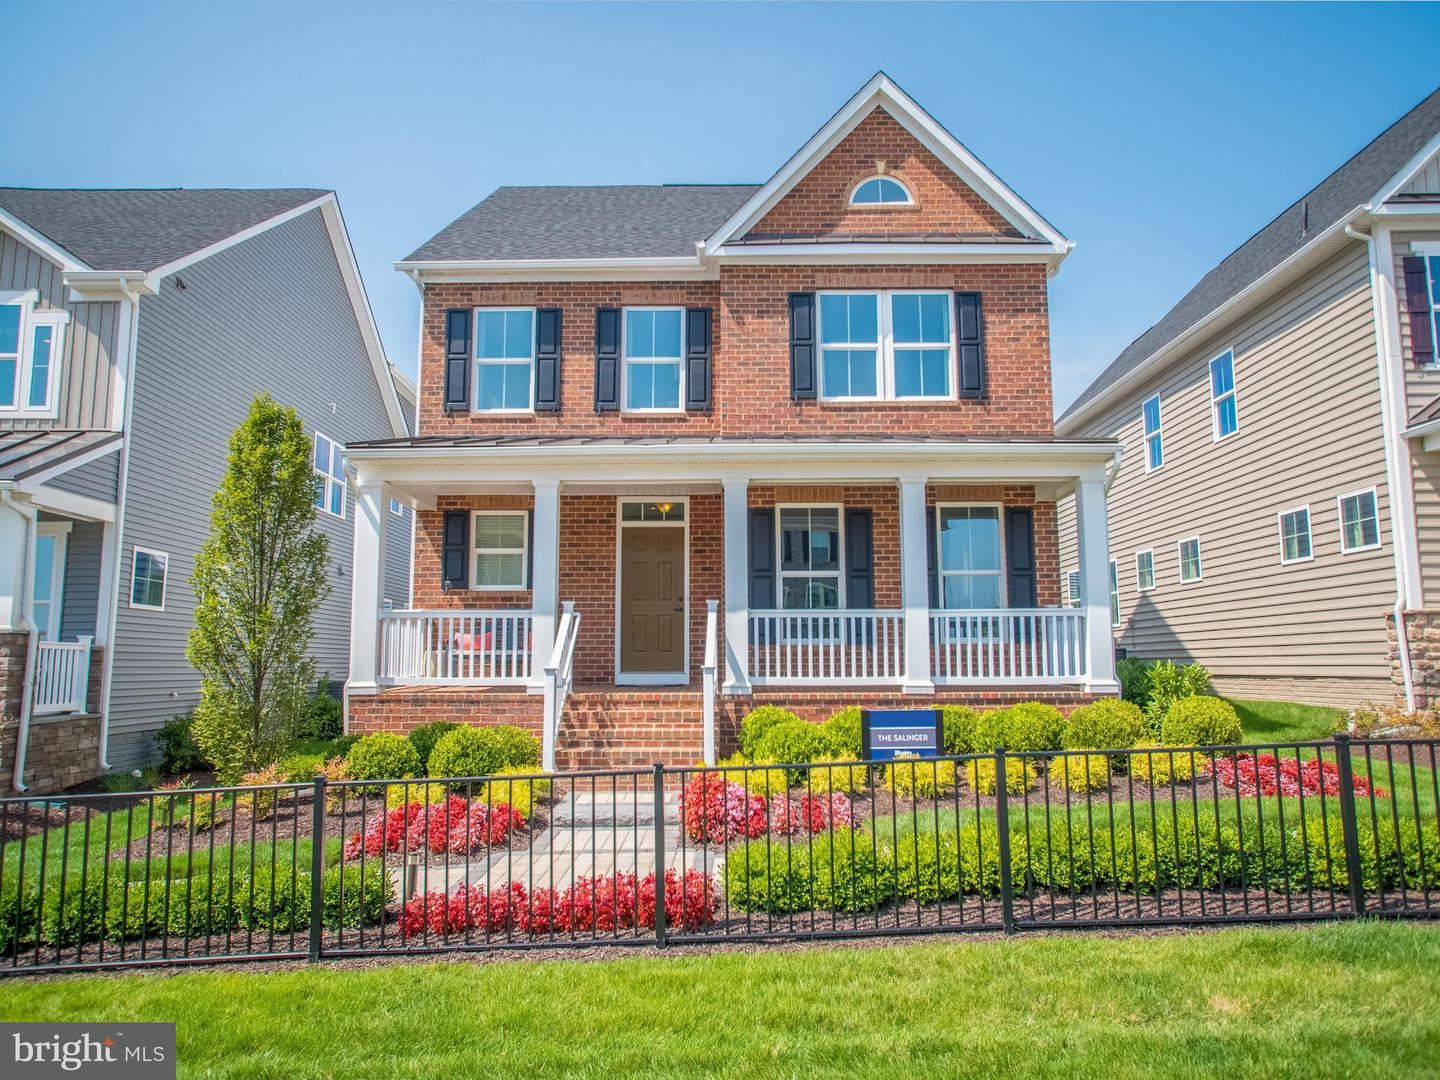 Property Image Of 21860 Woodcock Way In Clarksburg, Md